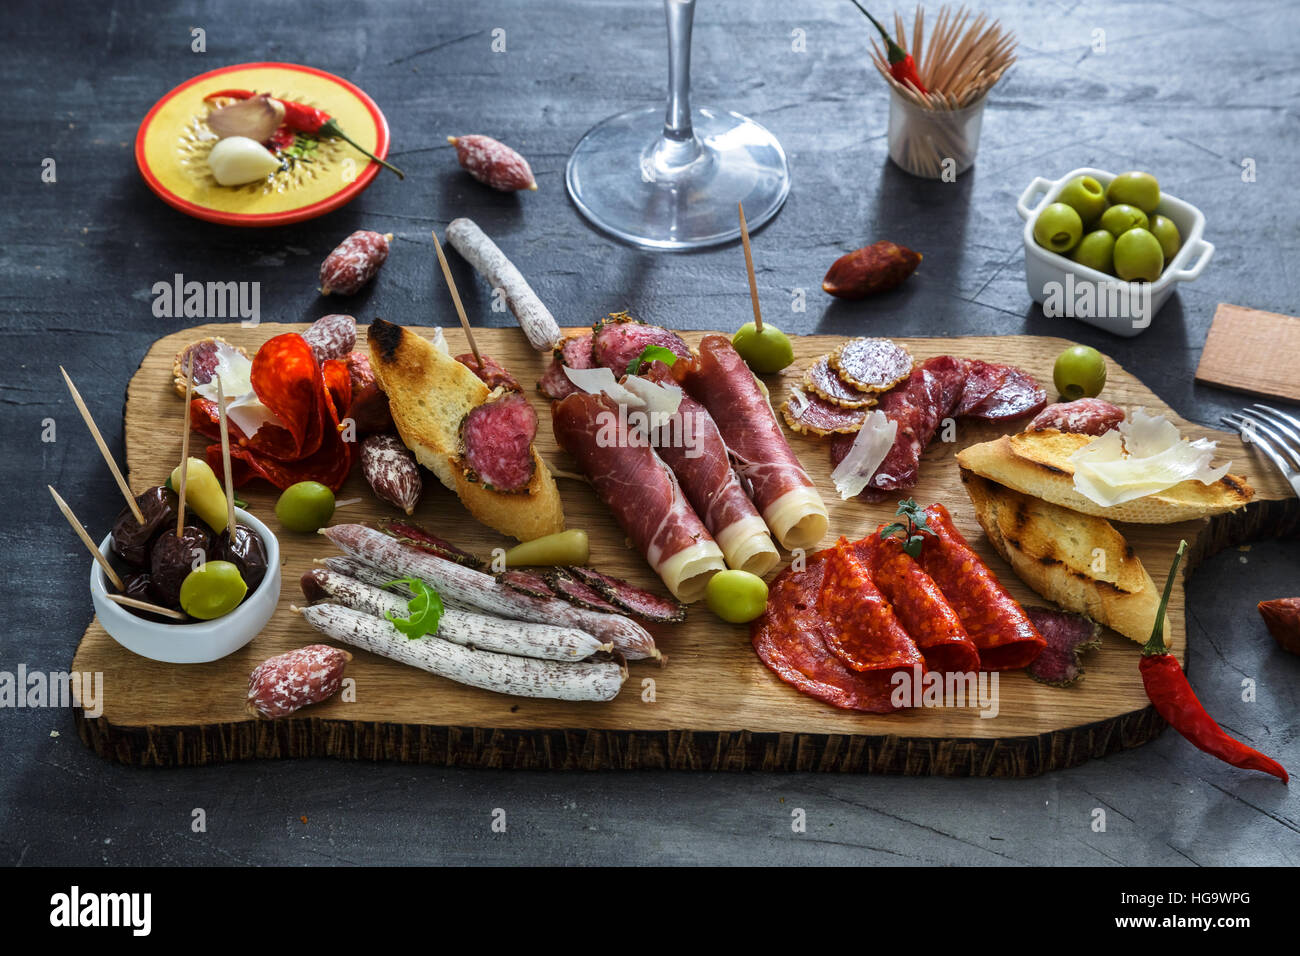 Mix of different snacks and appetizers. Spanish tapas on a black stone background.  bar. Space for text. Deli, sandwiches, - Stock Image